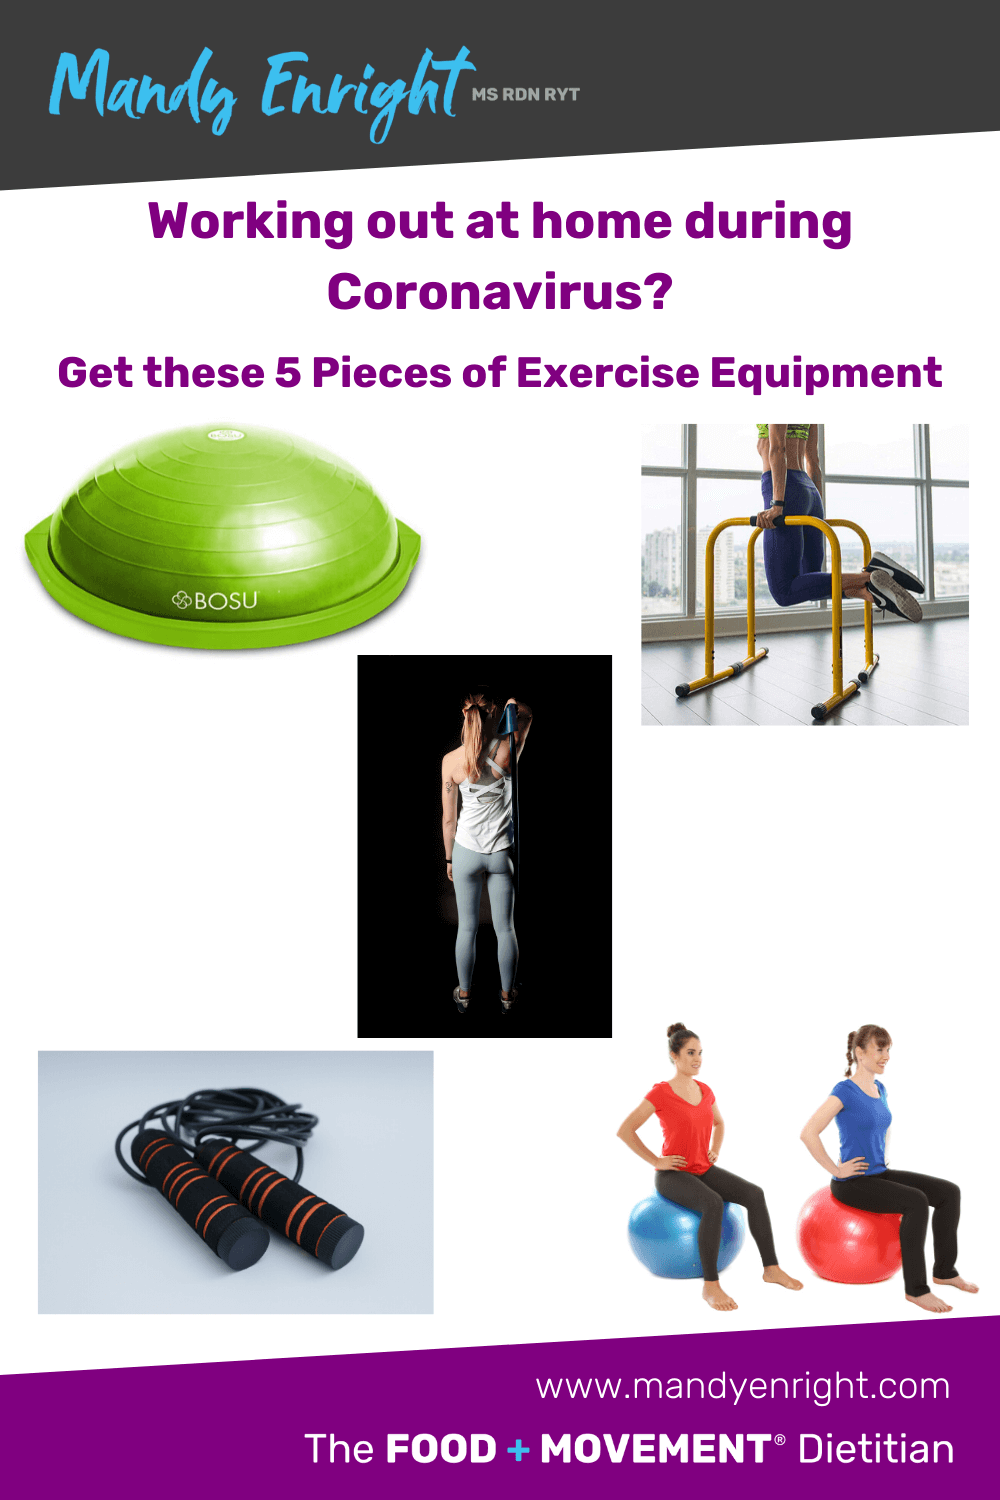 Working out at home during coronavirus? Get these 5 pieces of exercise equipment